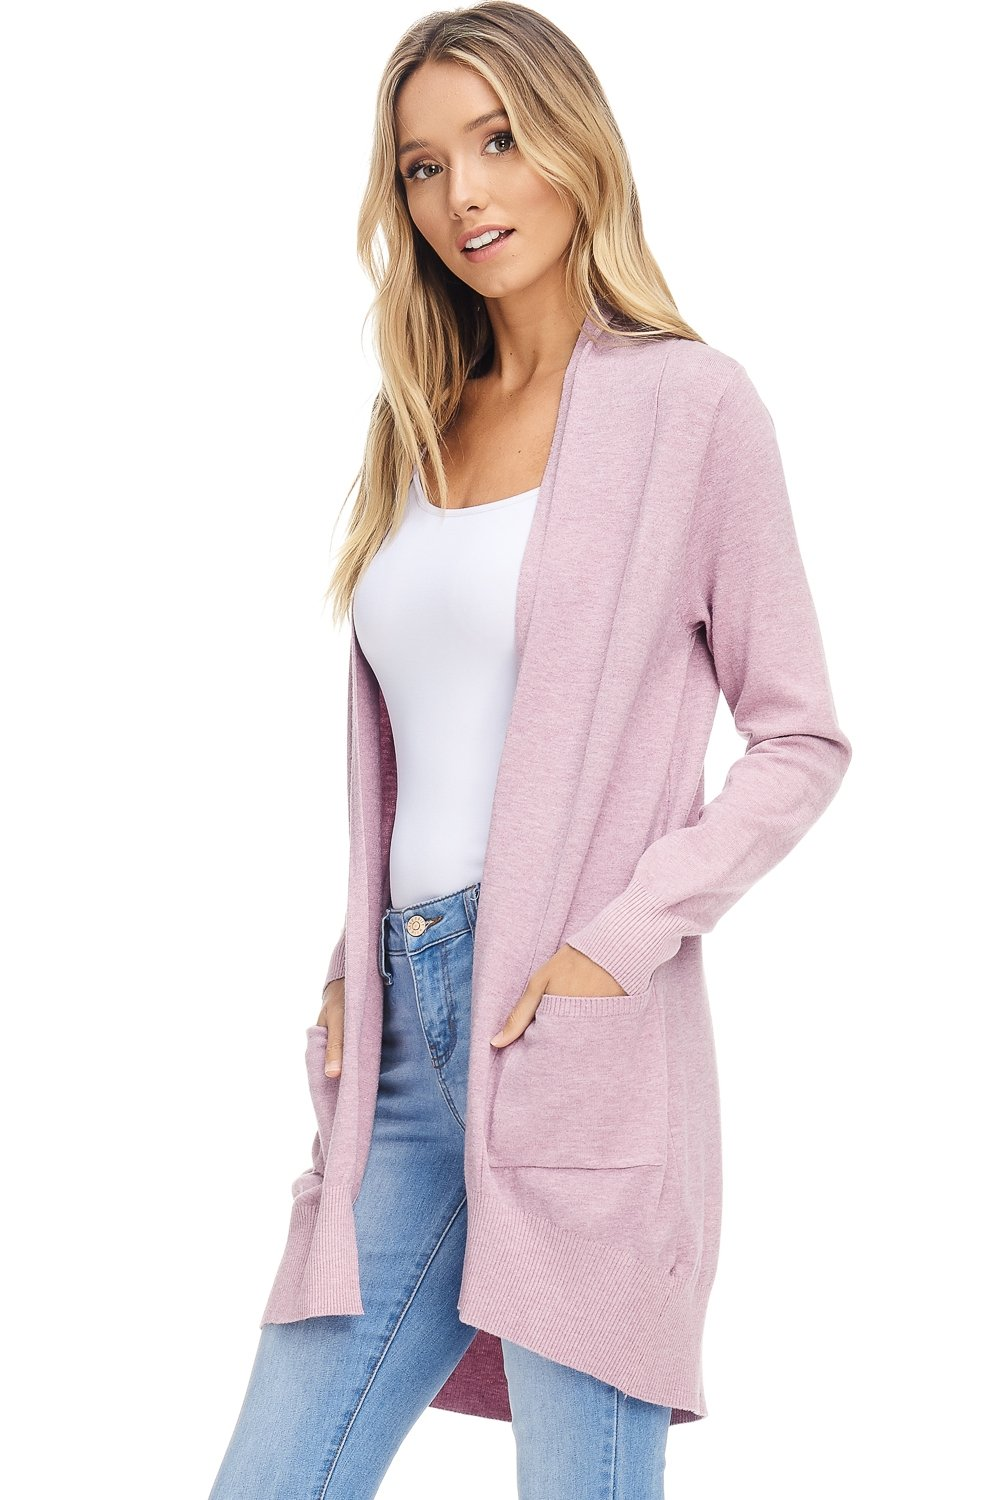 AD Womens Basic Open Front Knit Cardigan Sweater Top W/Pockets (H. Lilac, Medium/Large)